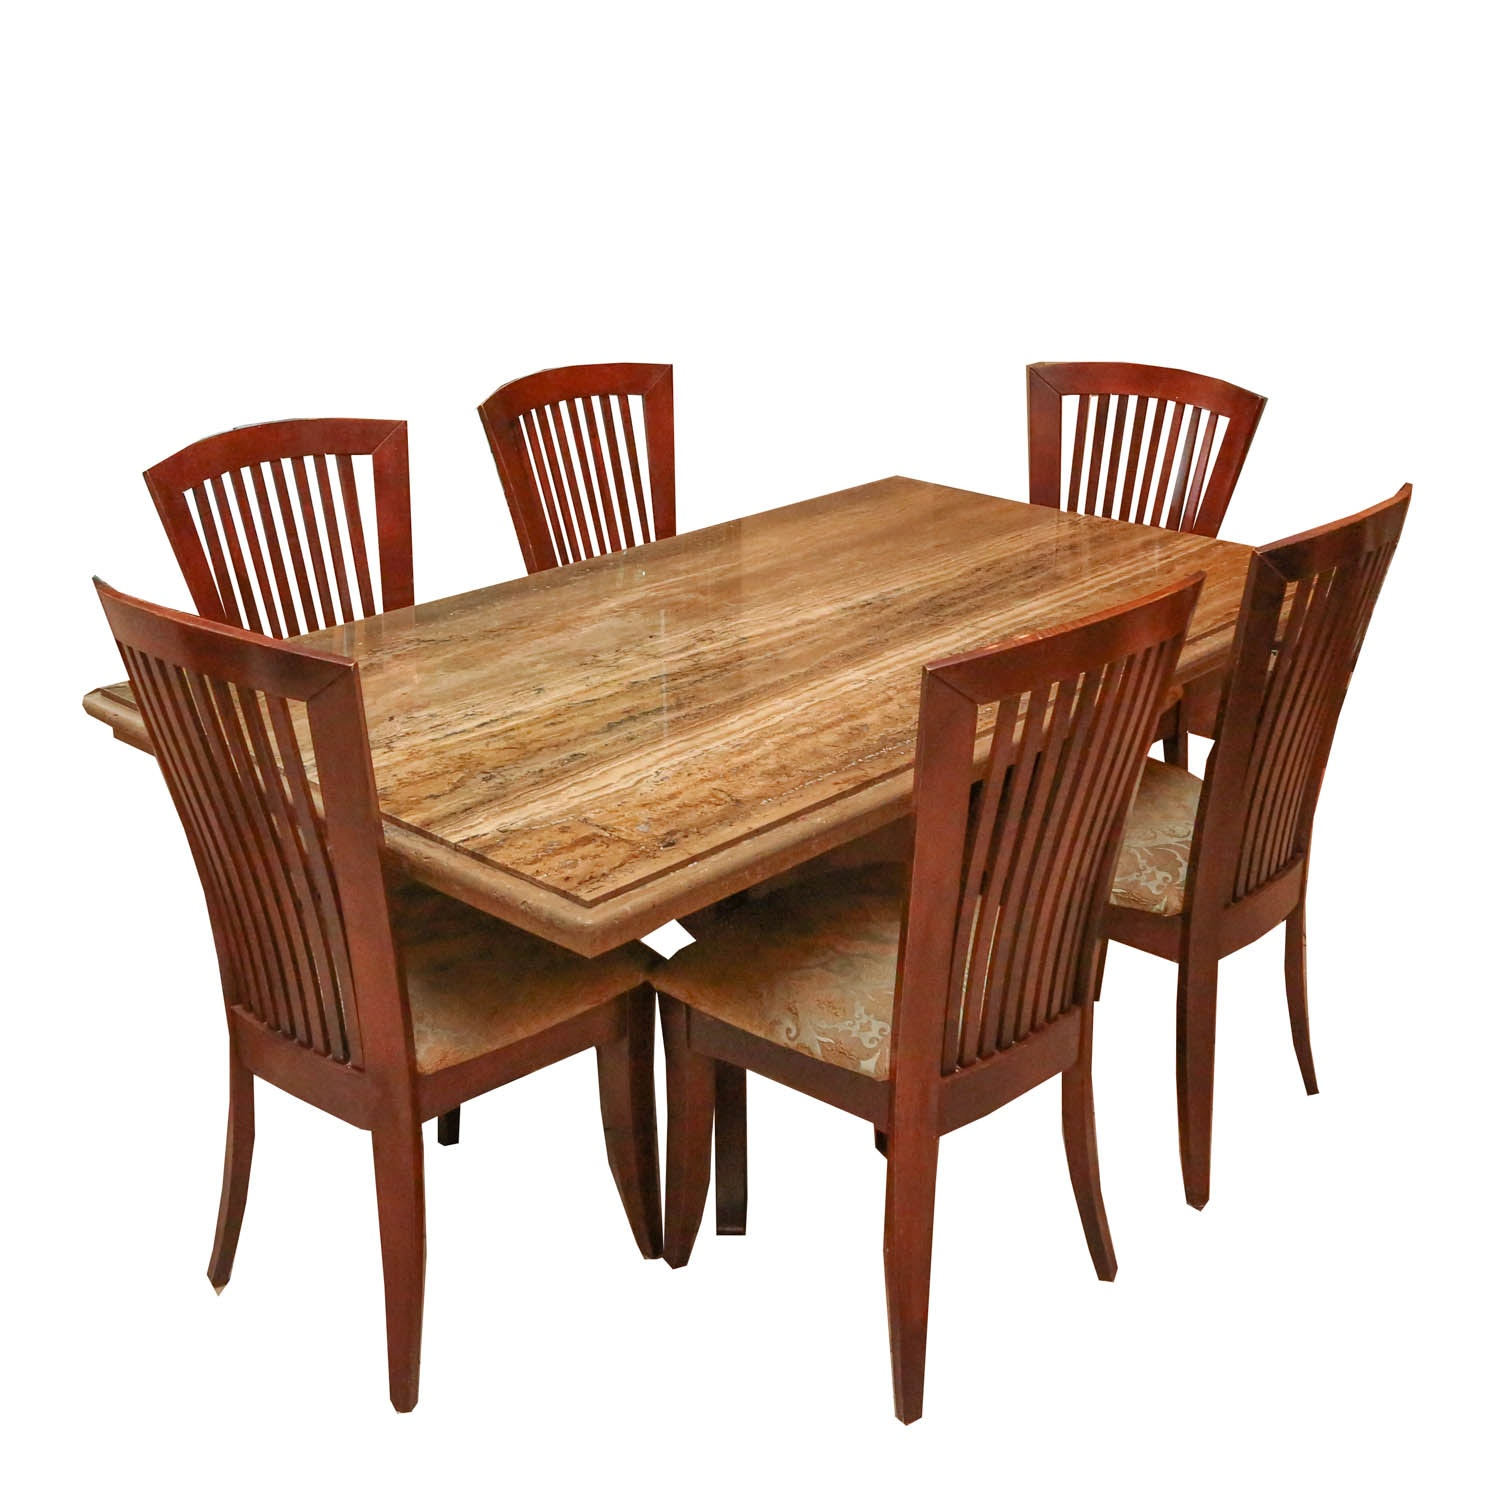 Stone International Marble Dining Table With Six Chairs ...